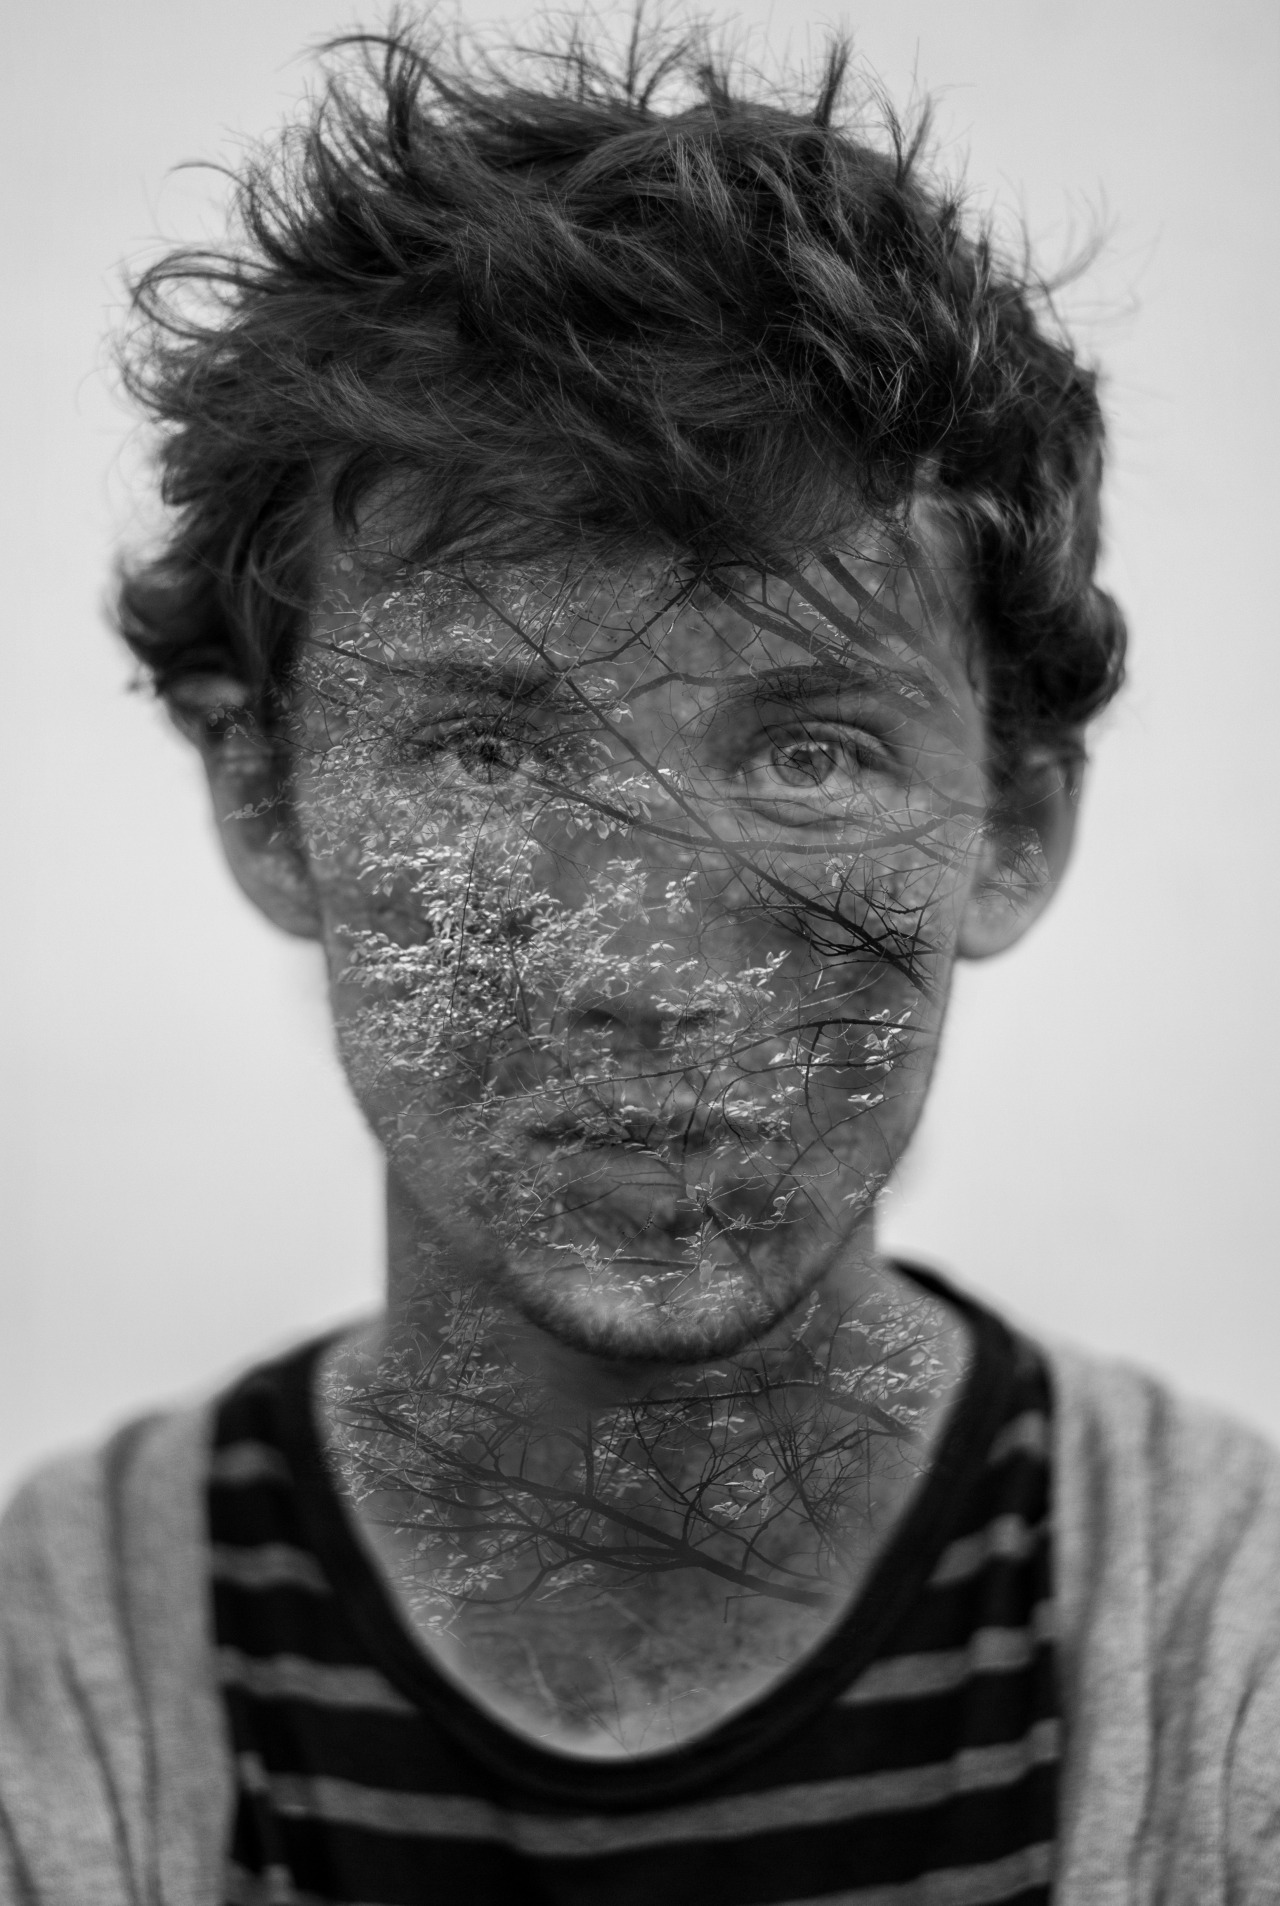 My first attempt at a trendy double exposure self portrait.